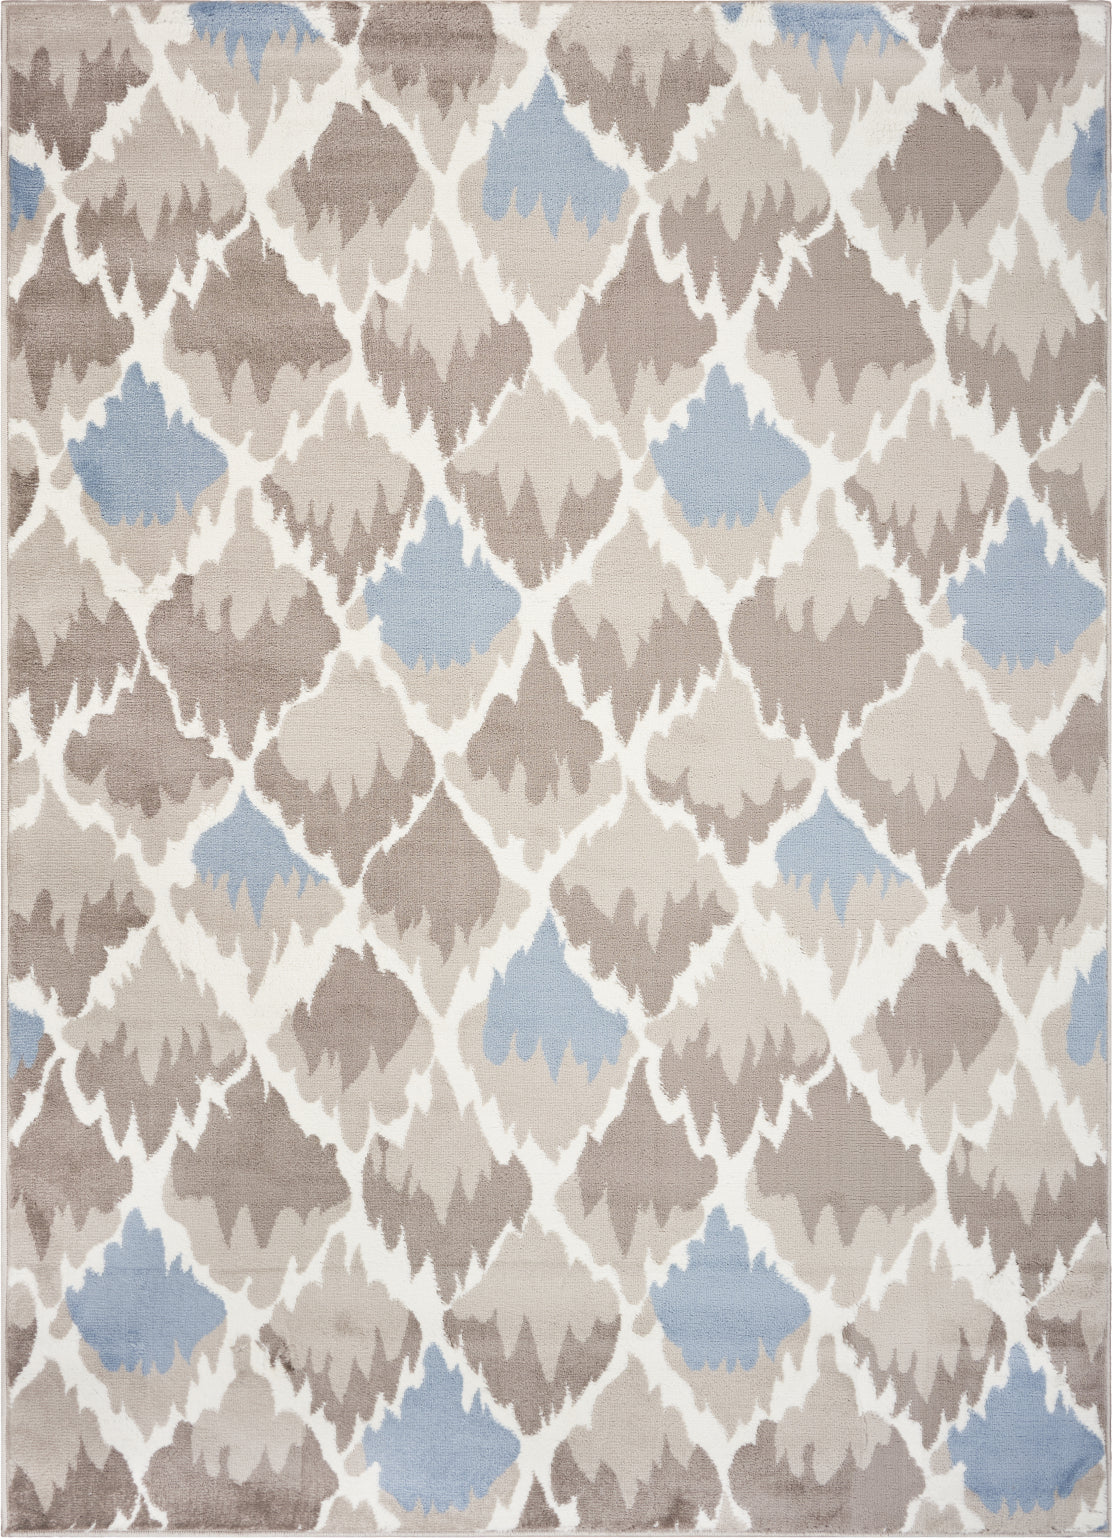 LR Resources Grace 81124 Gray / Light Blue Area Rug main image